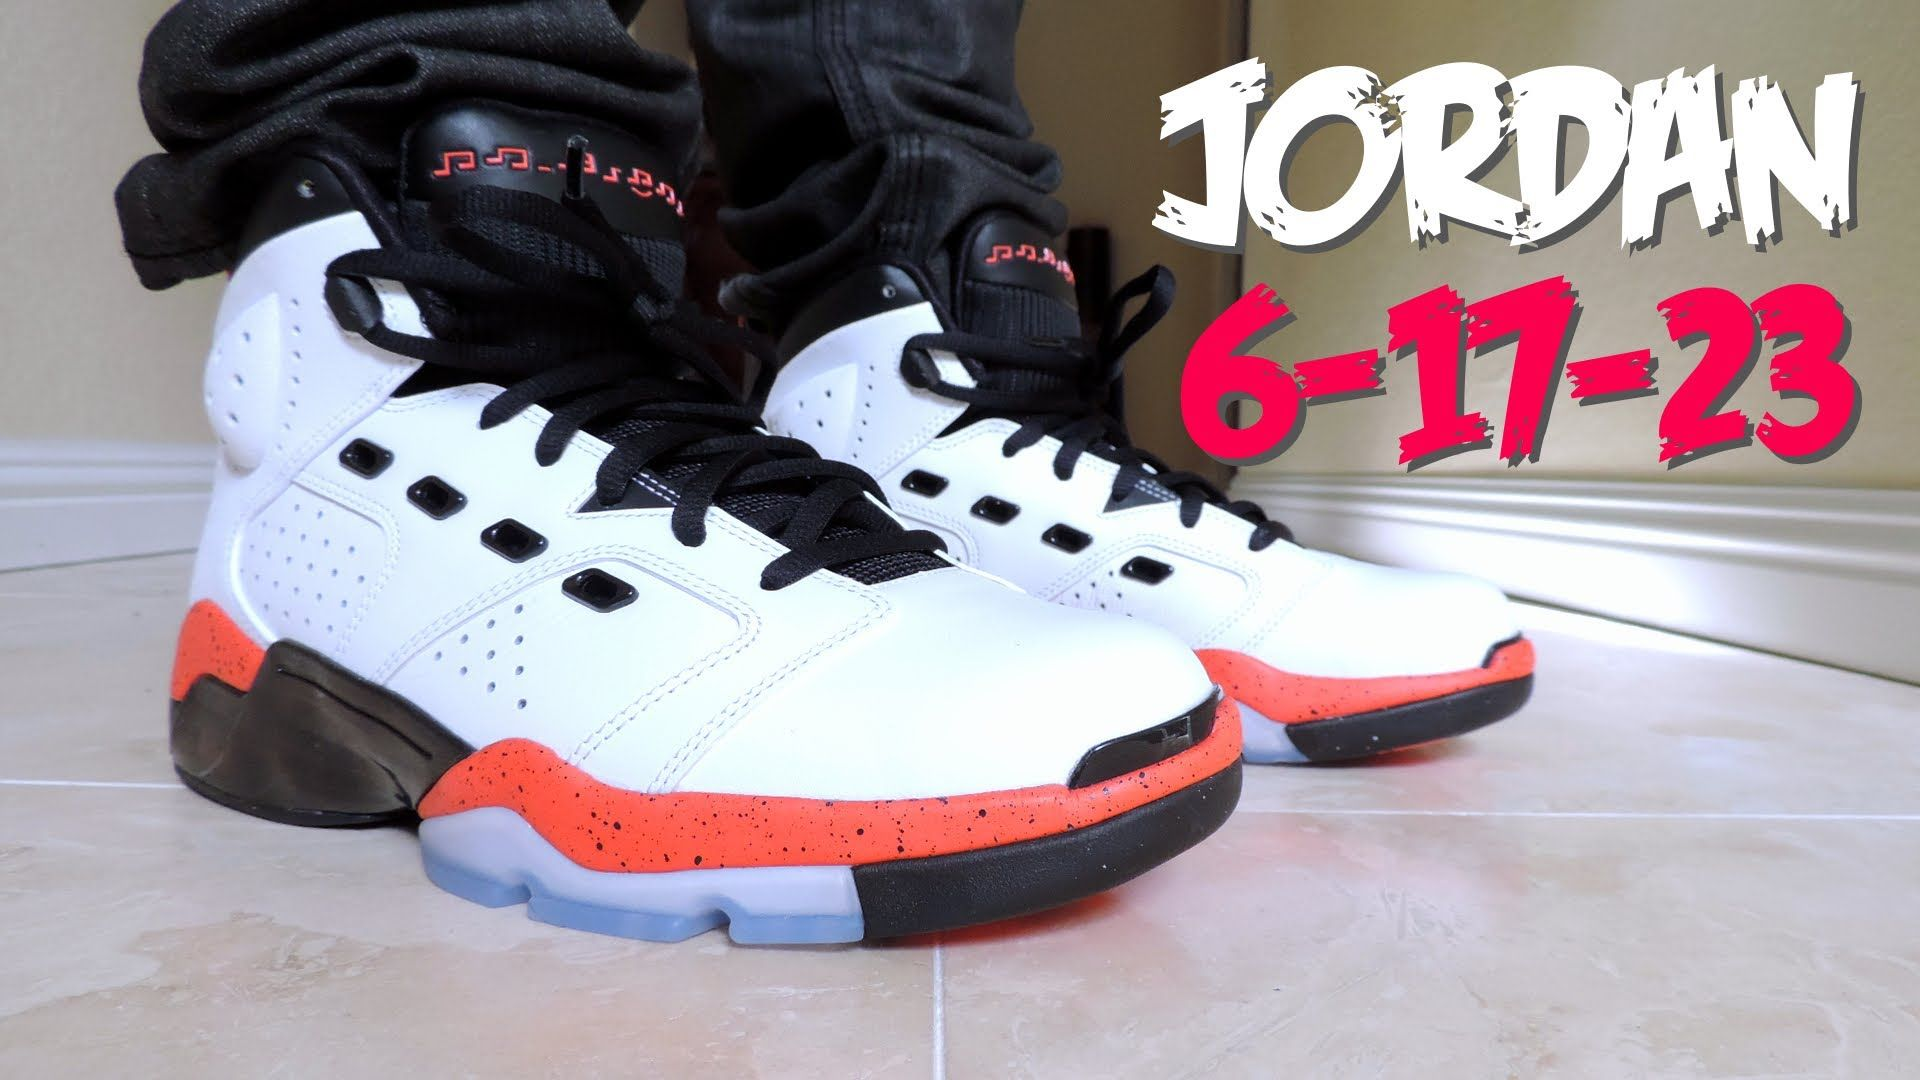 This is an on feet video for the Air Jordan 6-17-23  Infrared 23 . This  sneaker has a hybrid design of the Jordan Retro 6 and Retro 17  Youtube   Nike ... 6ff6e5acd